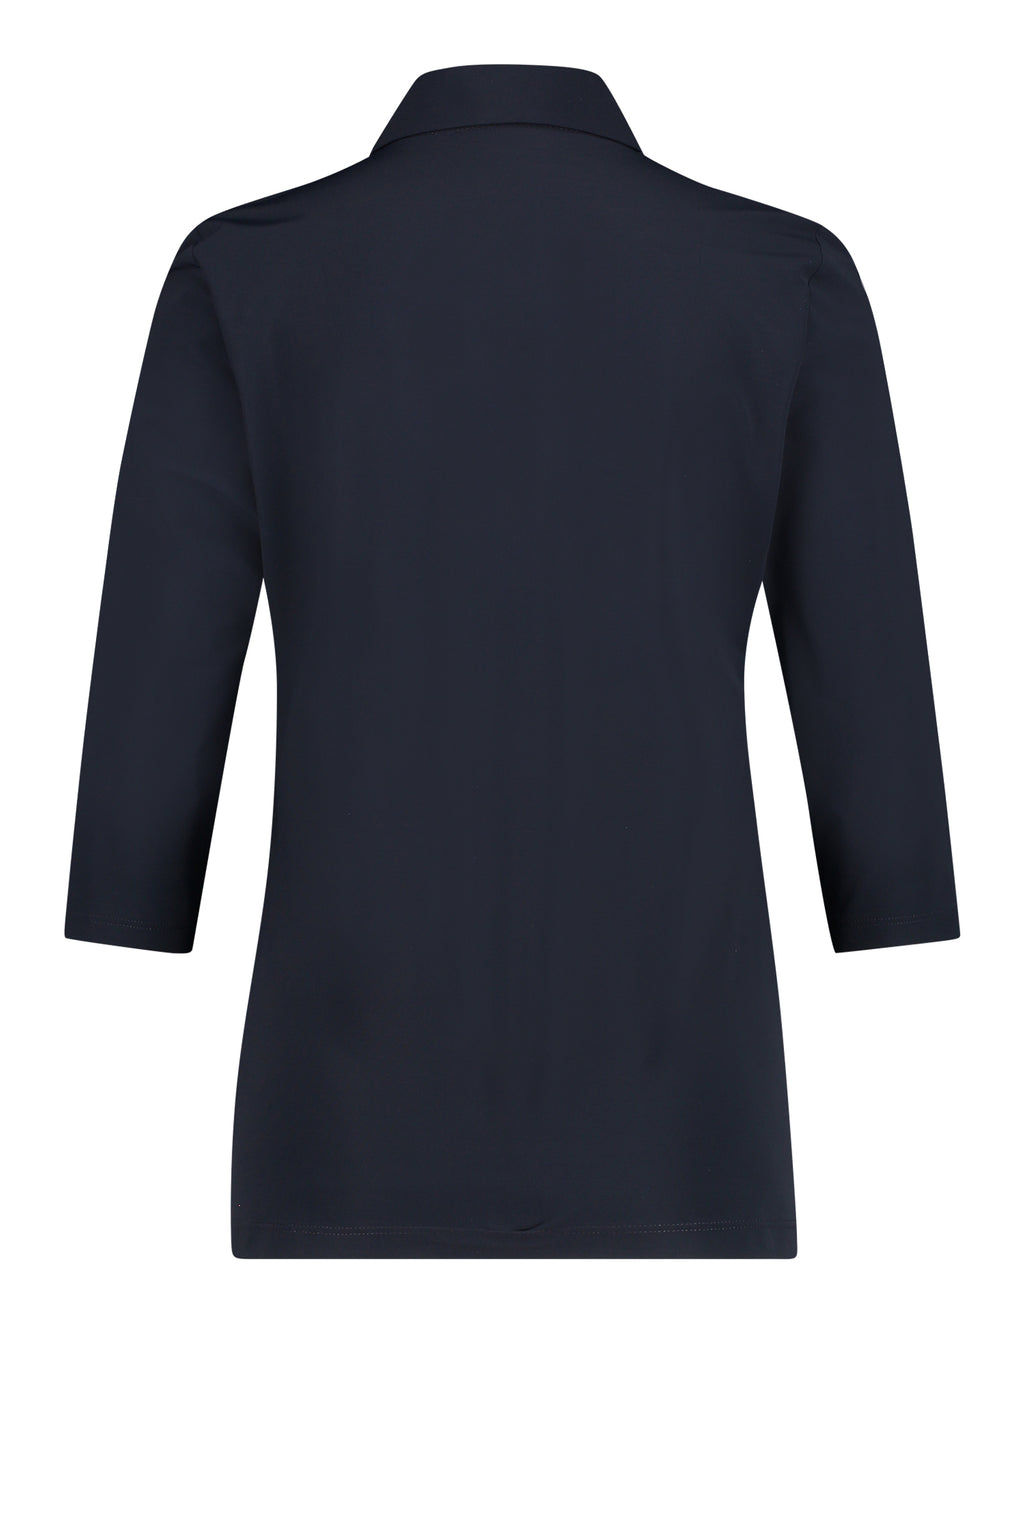 PACKSHOT BACK: PENN&INK N.Y TOP (LUX) NAVY